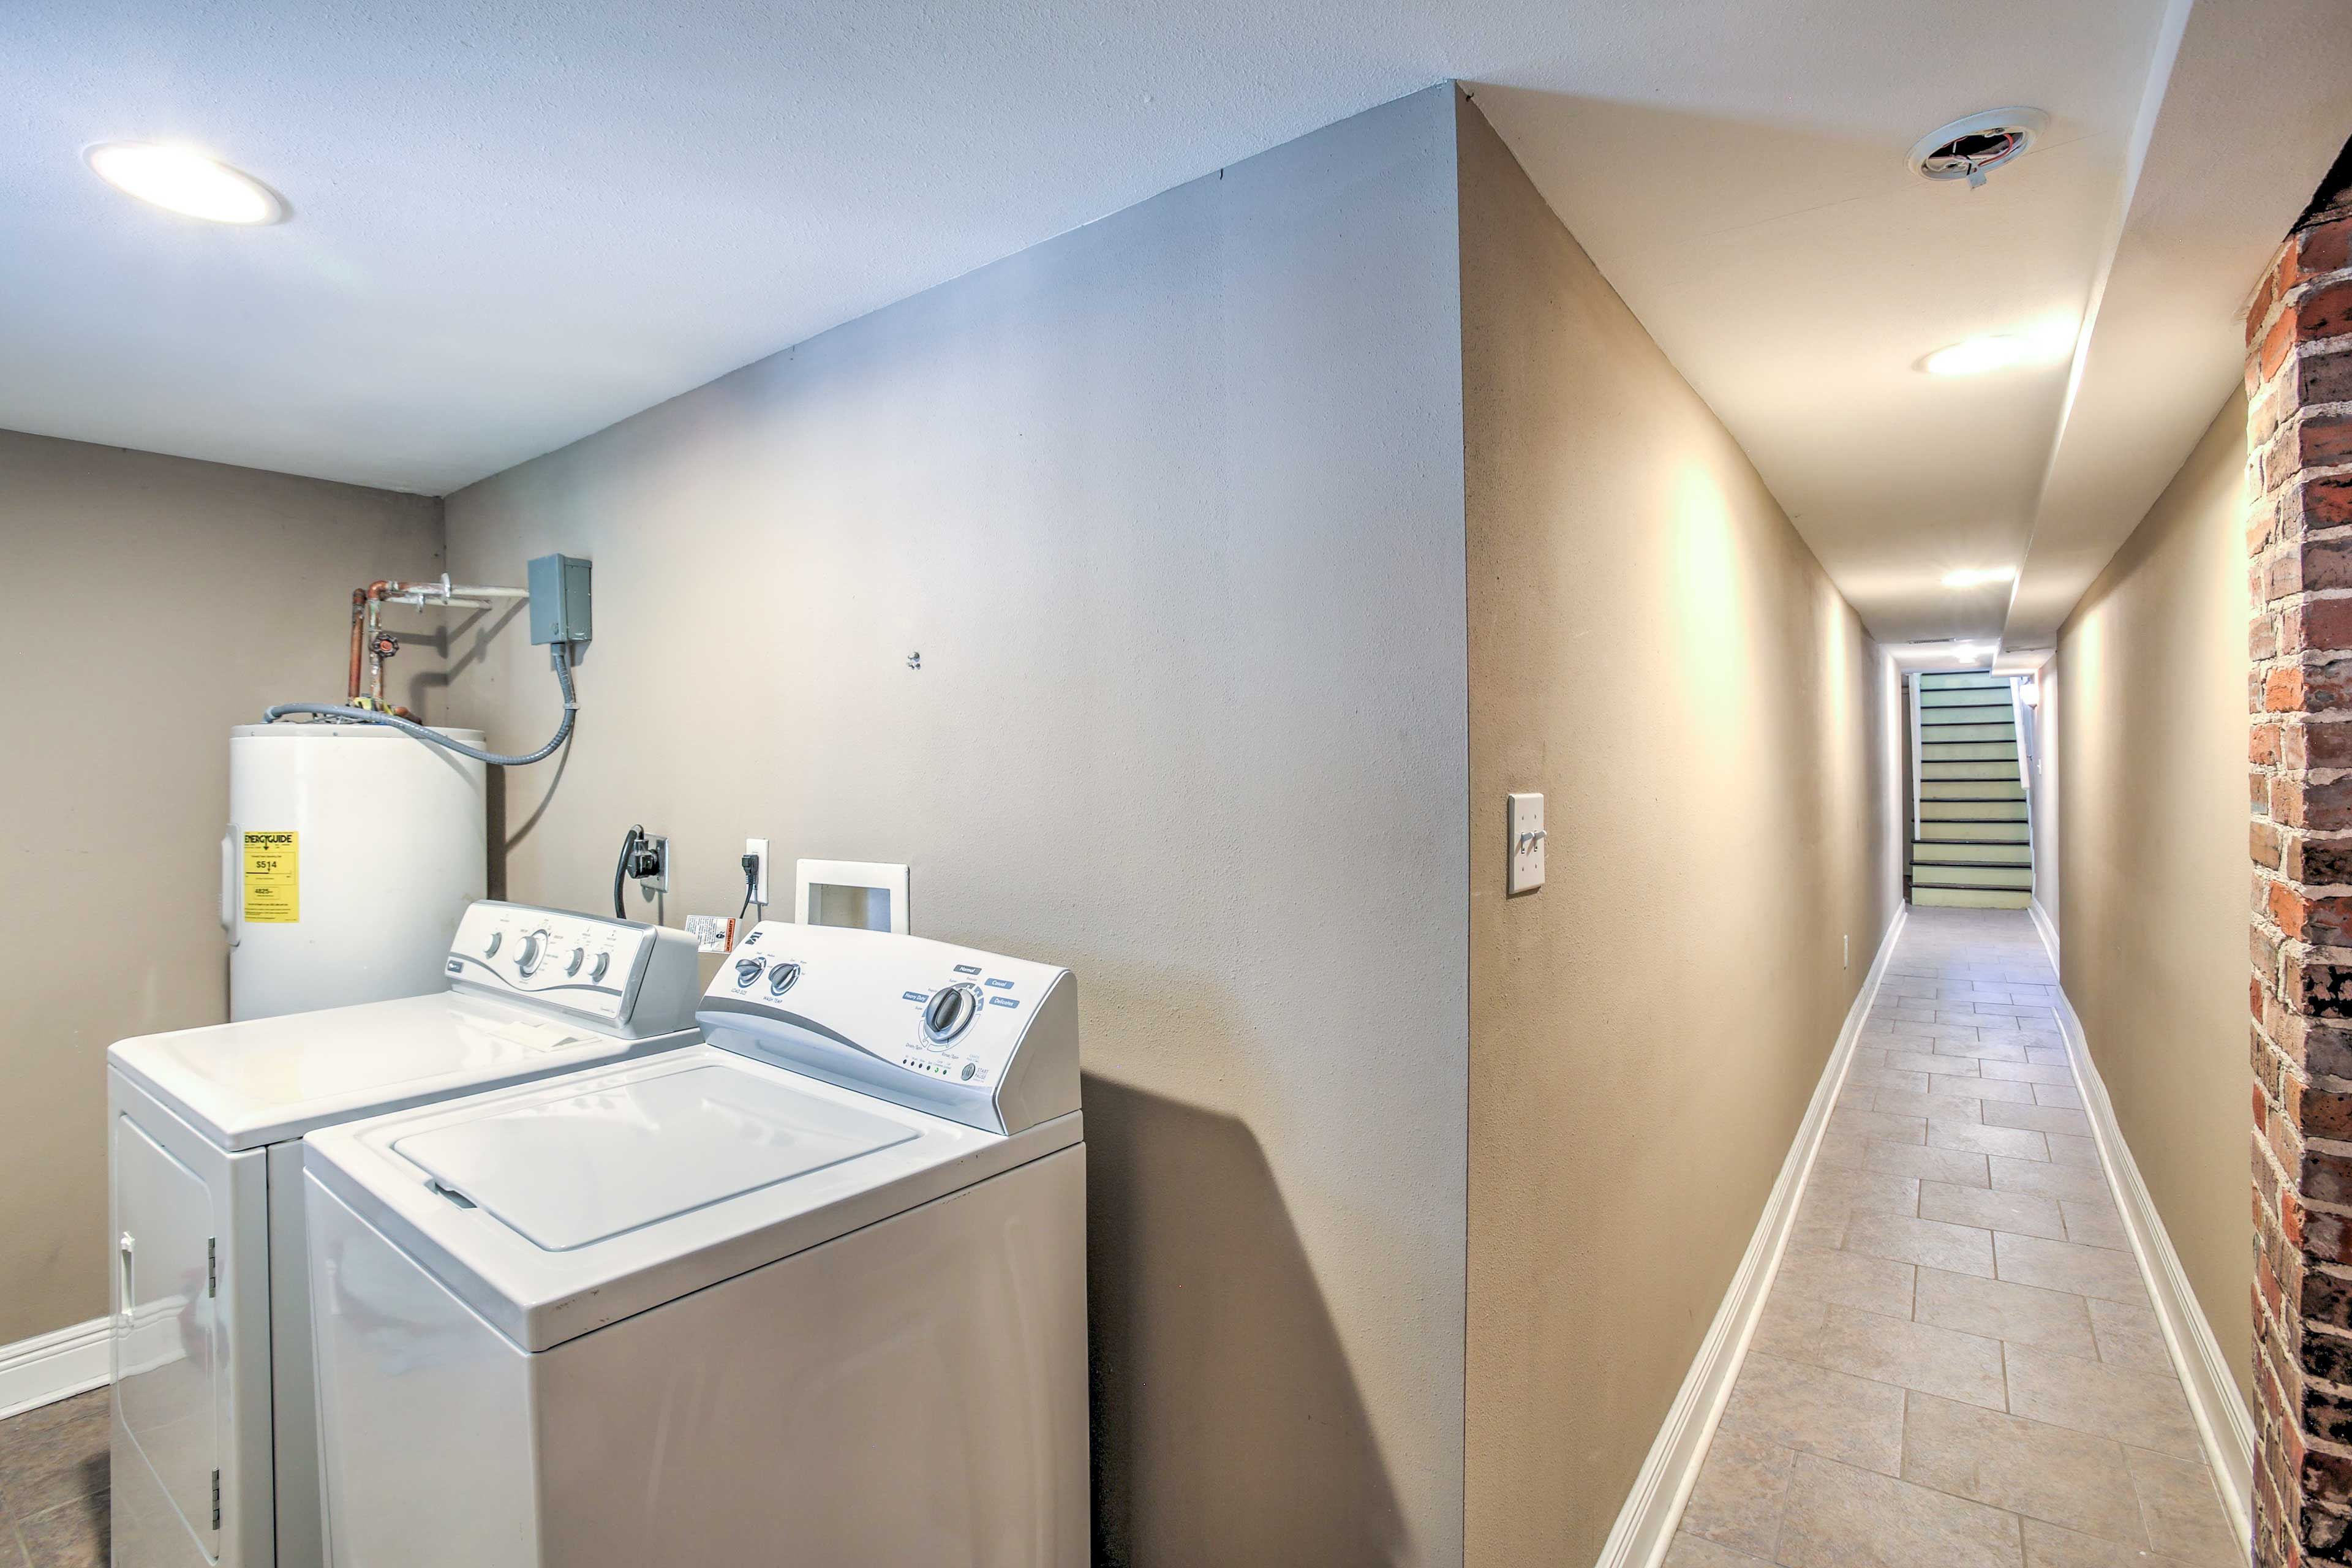 The on-site washer and dryer make it easy to keep your clothes clean.